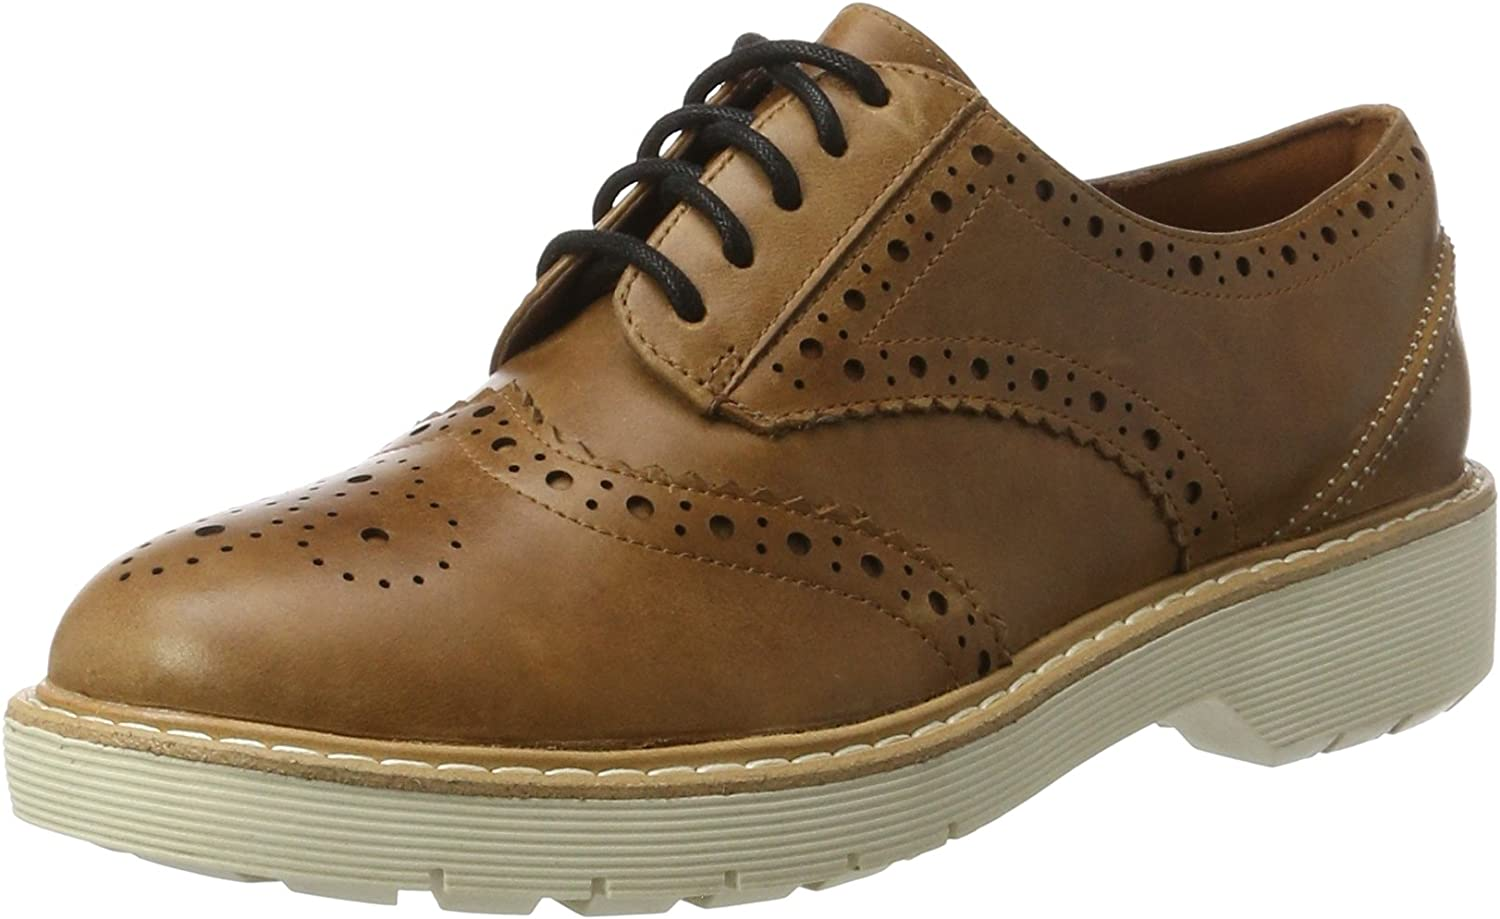 Clarks Witcombe Echo - Tan Nubuck (Brown) Womens shoes